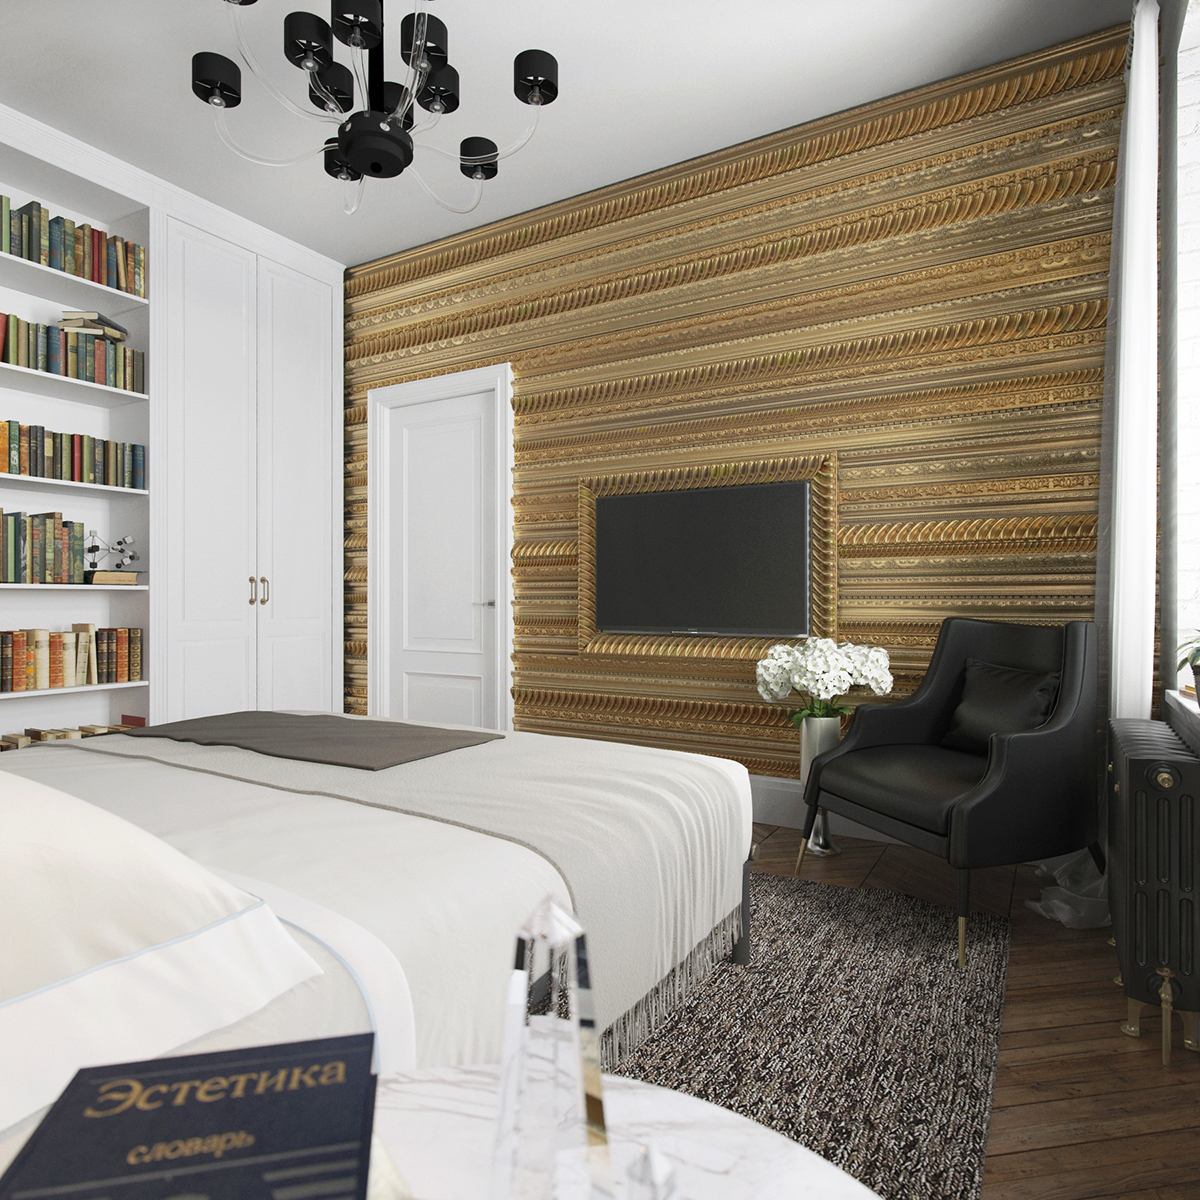 HOW STUNNING CAN A APARTMENT DESIGN BE? black apartment HOW STUNNING CAN A BLACK APARTMENT DESIGN BE? 8da74a41528775